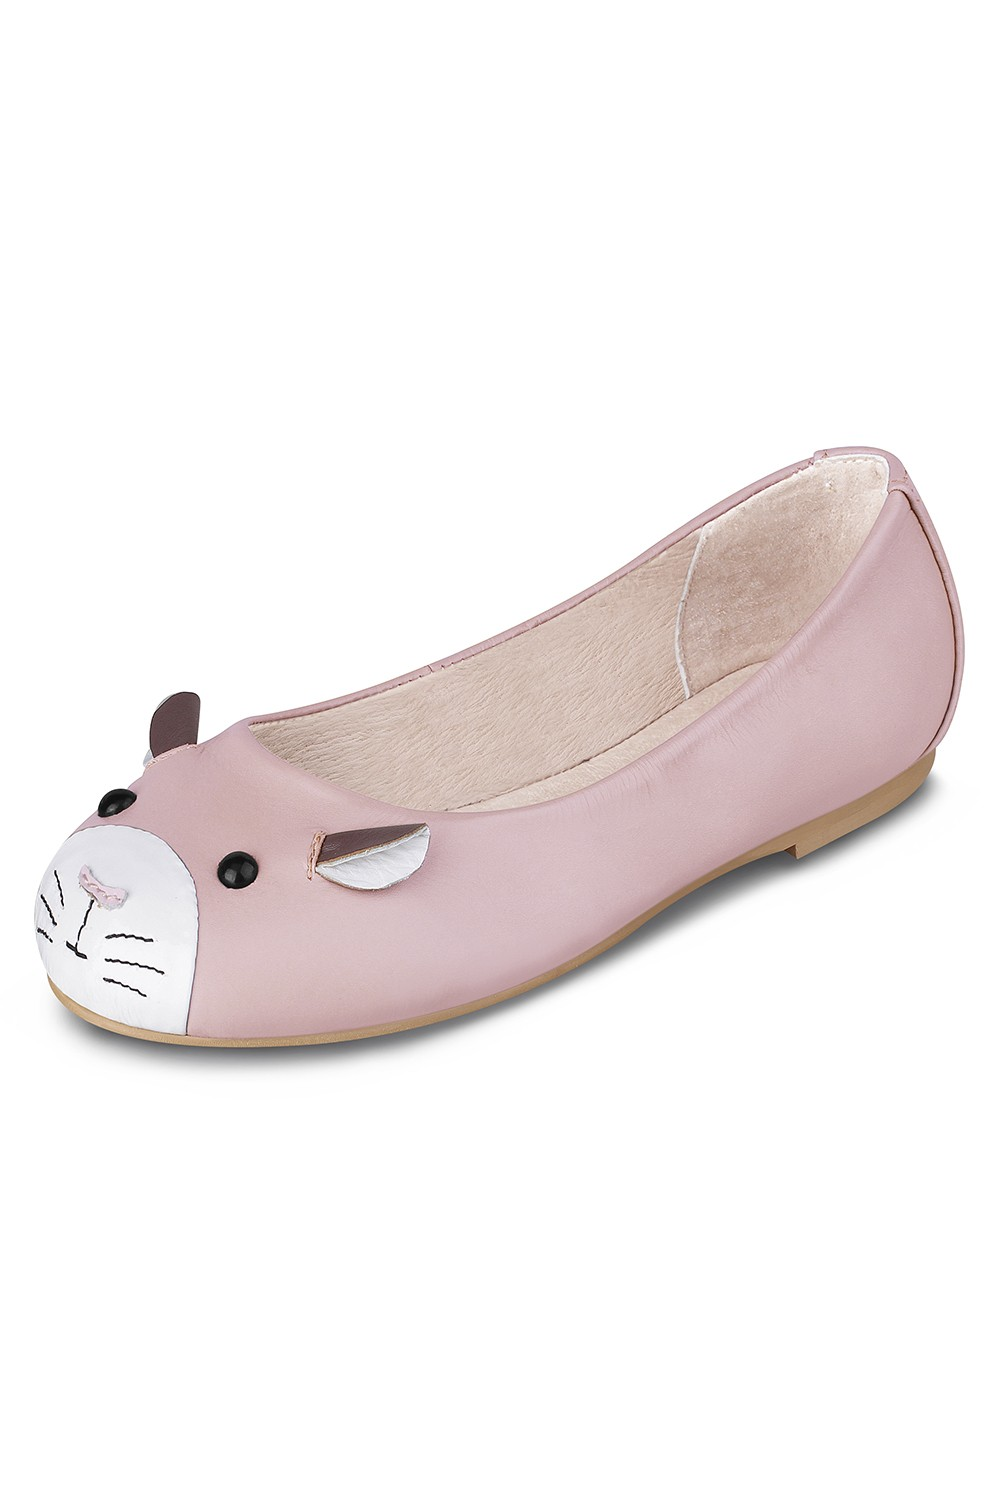 Hamster Girls Fashion Shoes